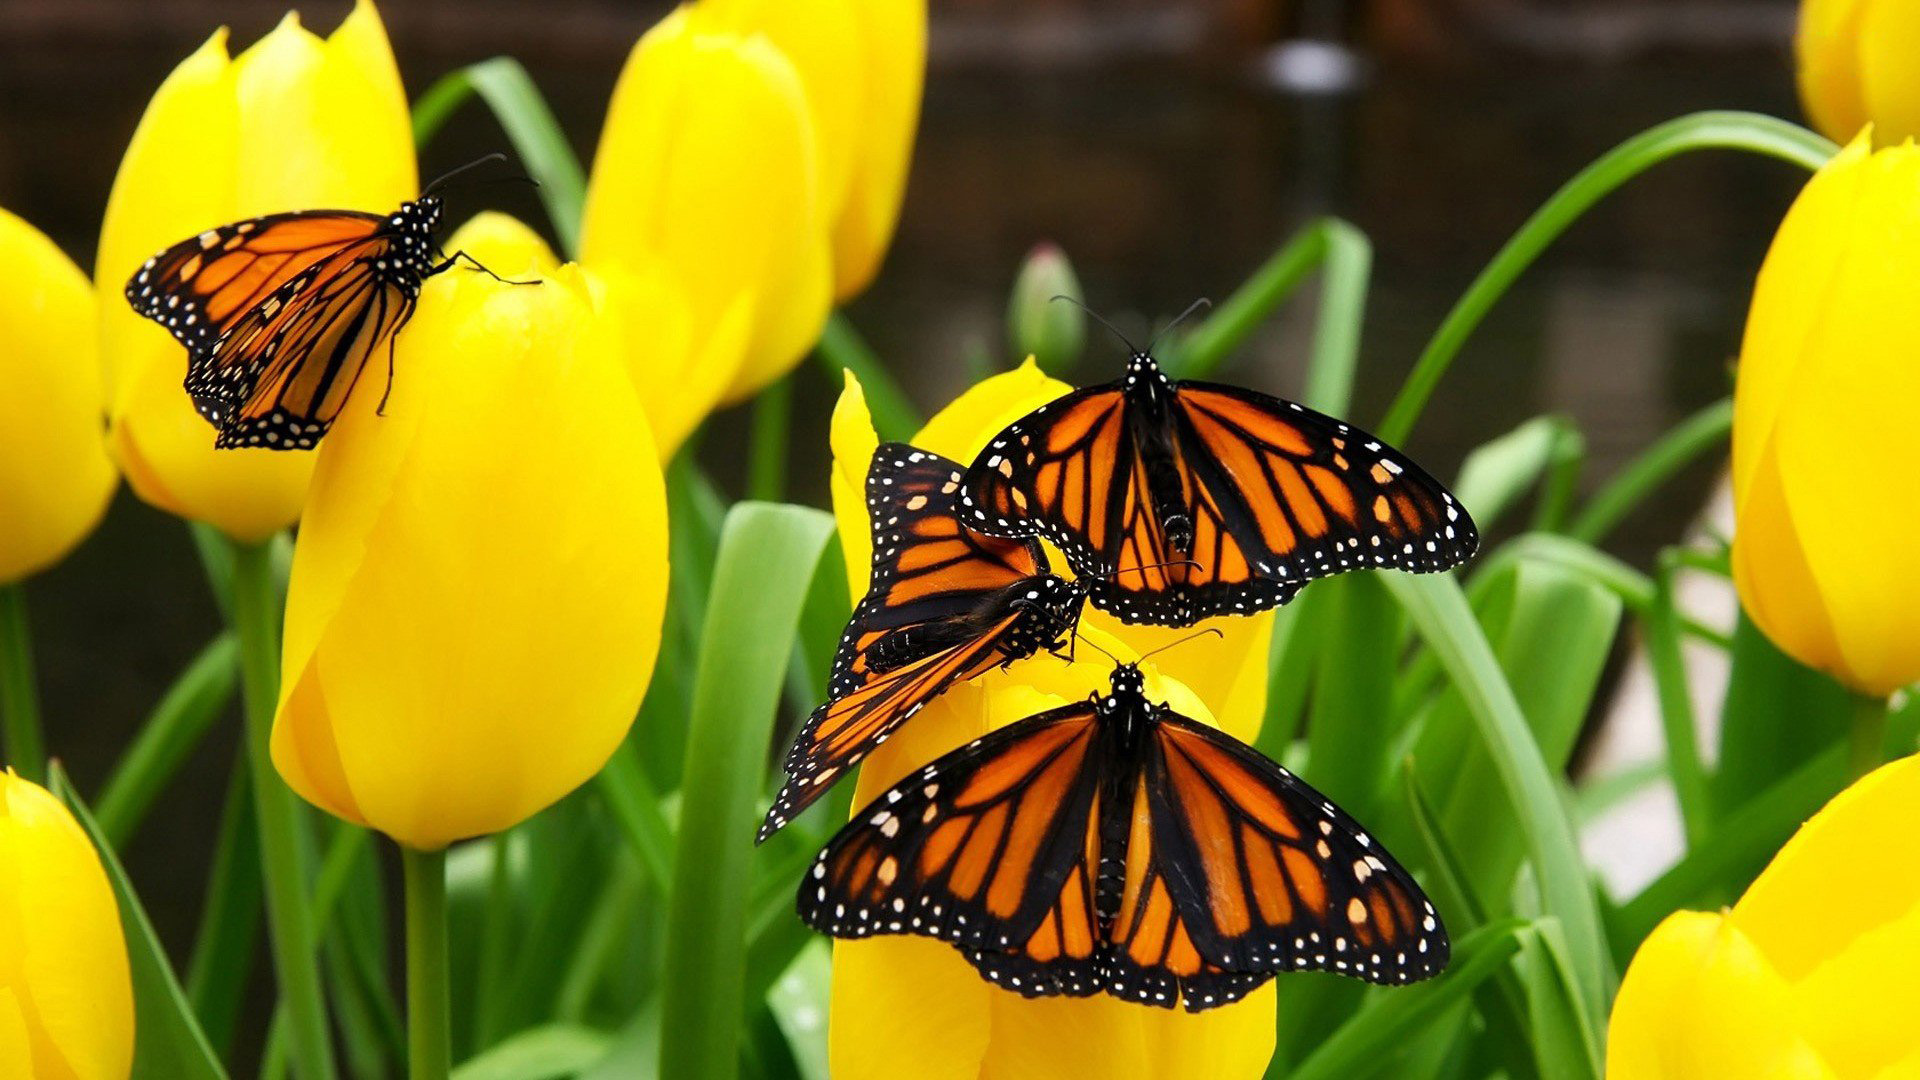 Butterfly Flowers Monarch Yellow Insects Original Images - Monarch Butterfly Desktop Backgrounds , HD Wallpaper & Backgrounds